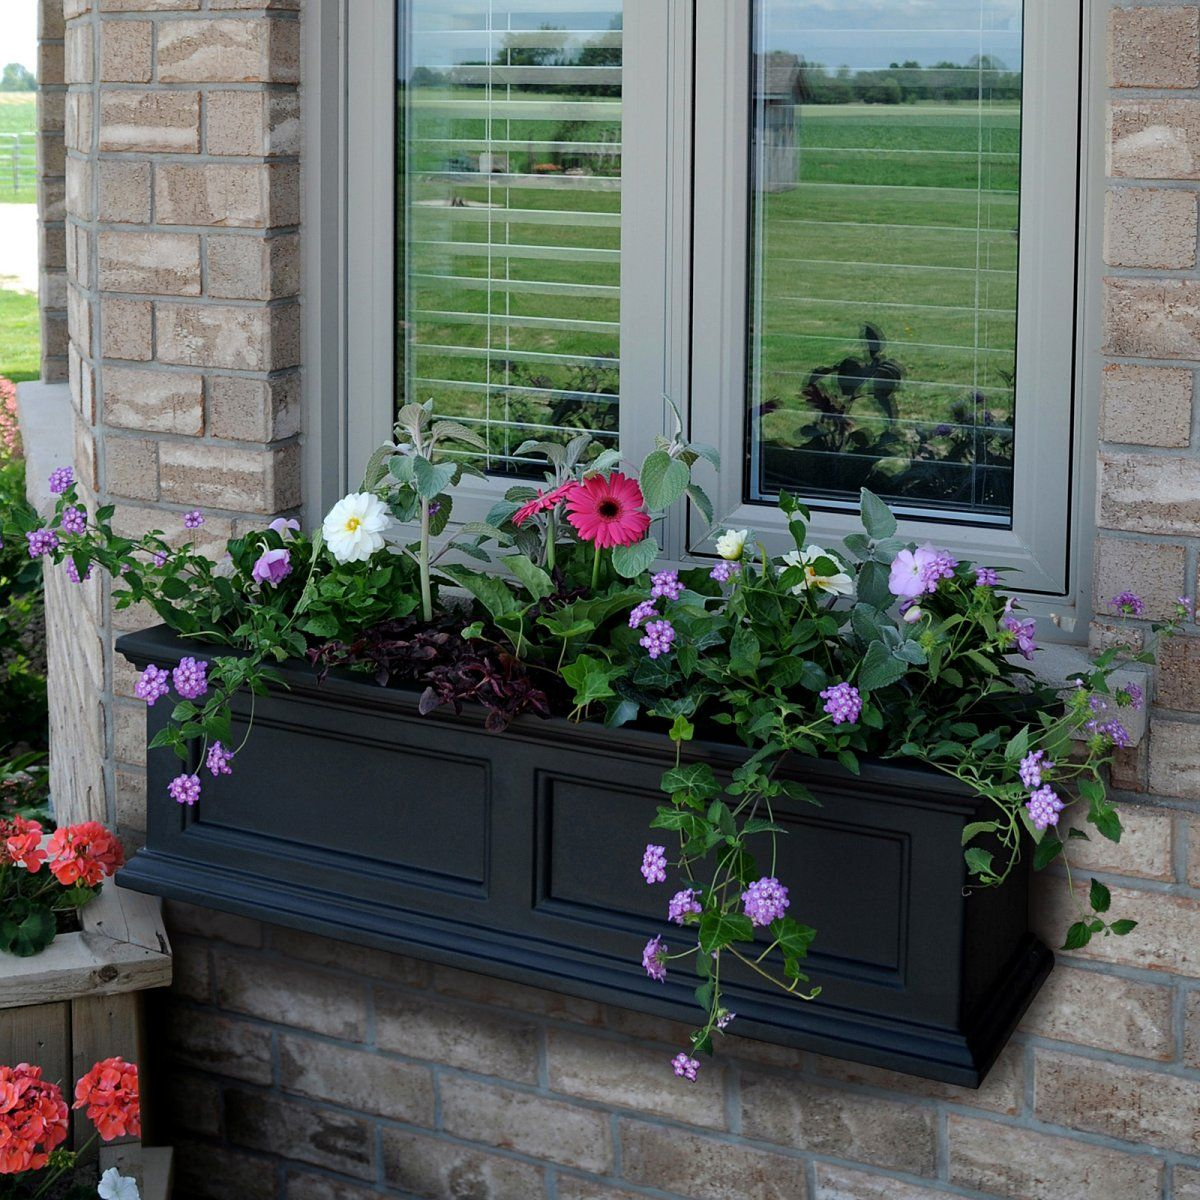 Window box ideas without flowers  window box ideas  boites a fleurs  pinterest  planters gardens